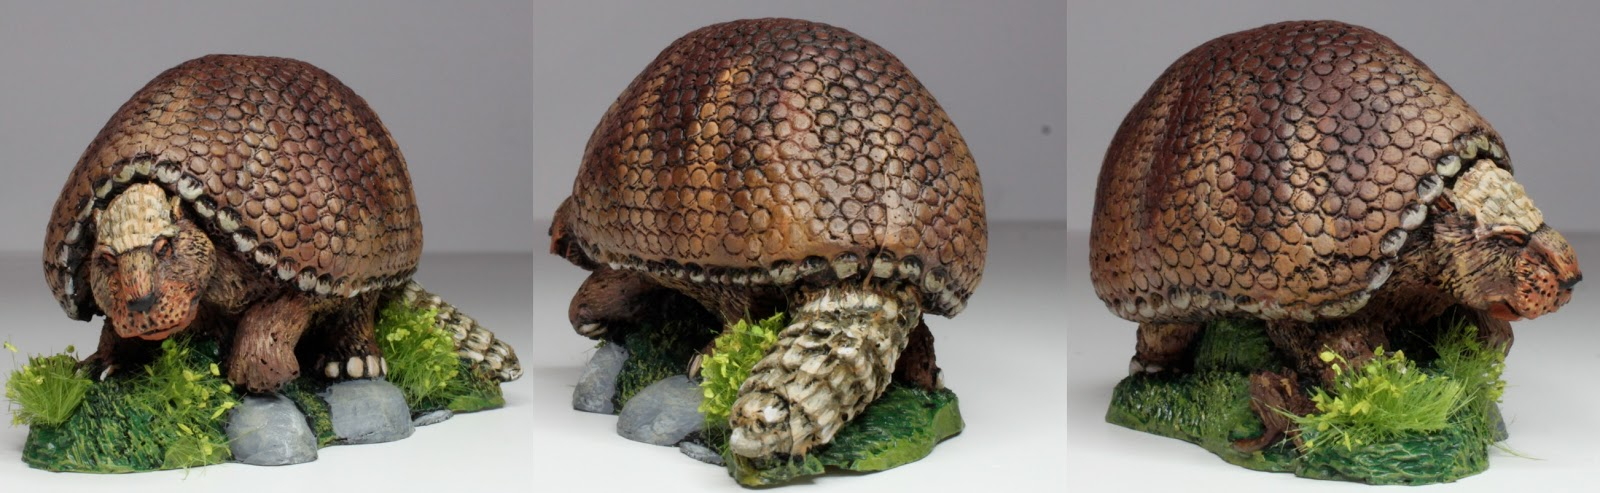 28mm Victorian Warfare: A 28mm Glyptodon!